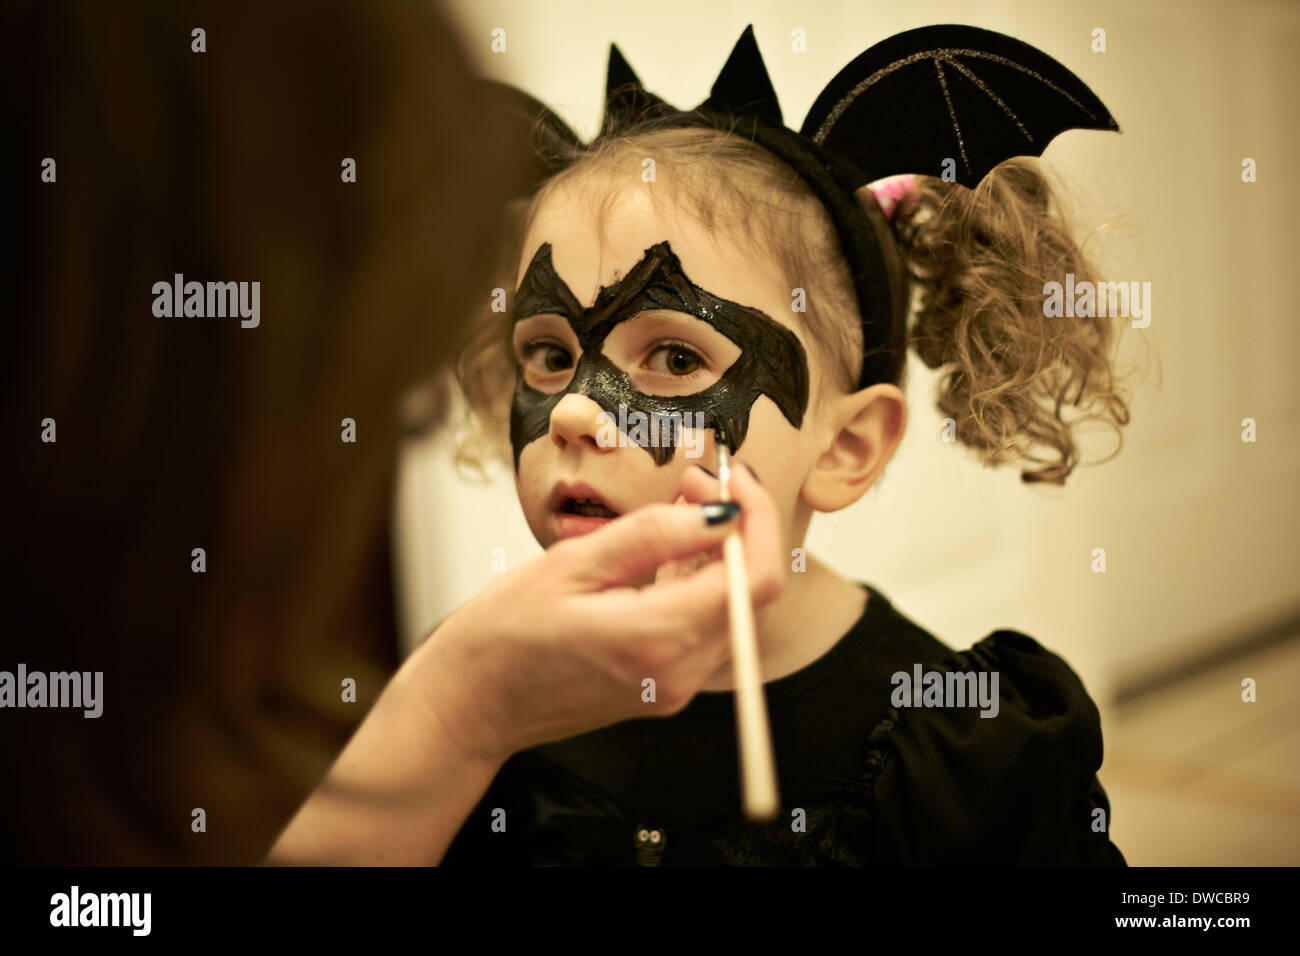 Mother painting daughters face for halloween bat costume - Stock Image